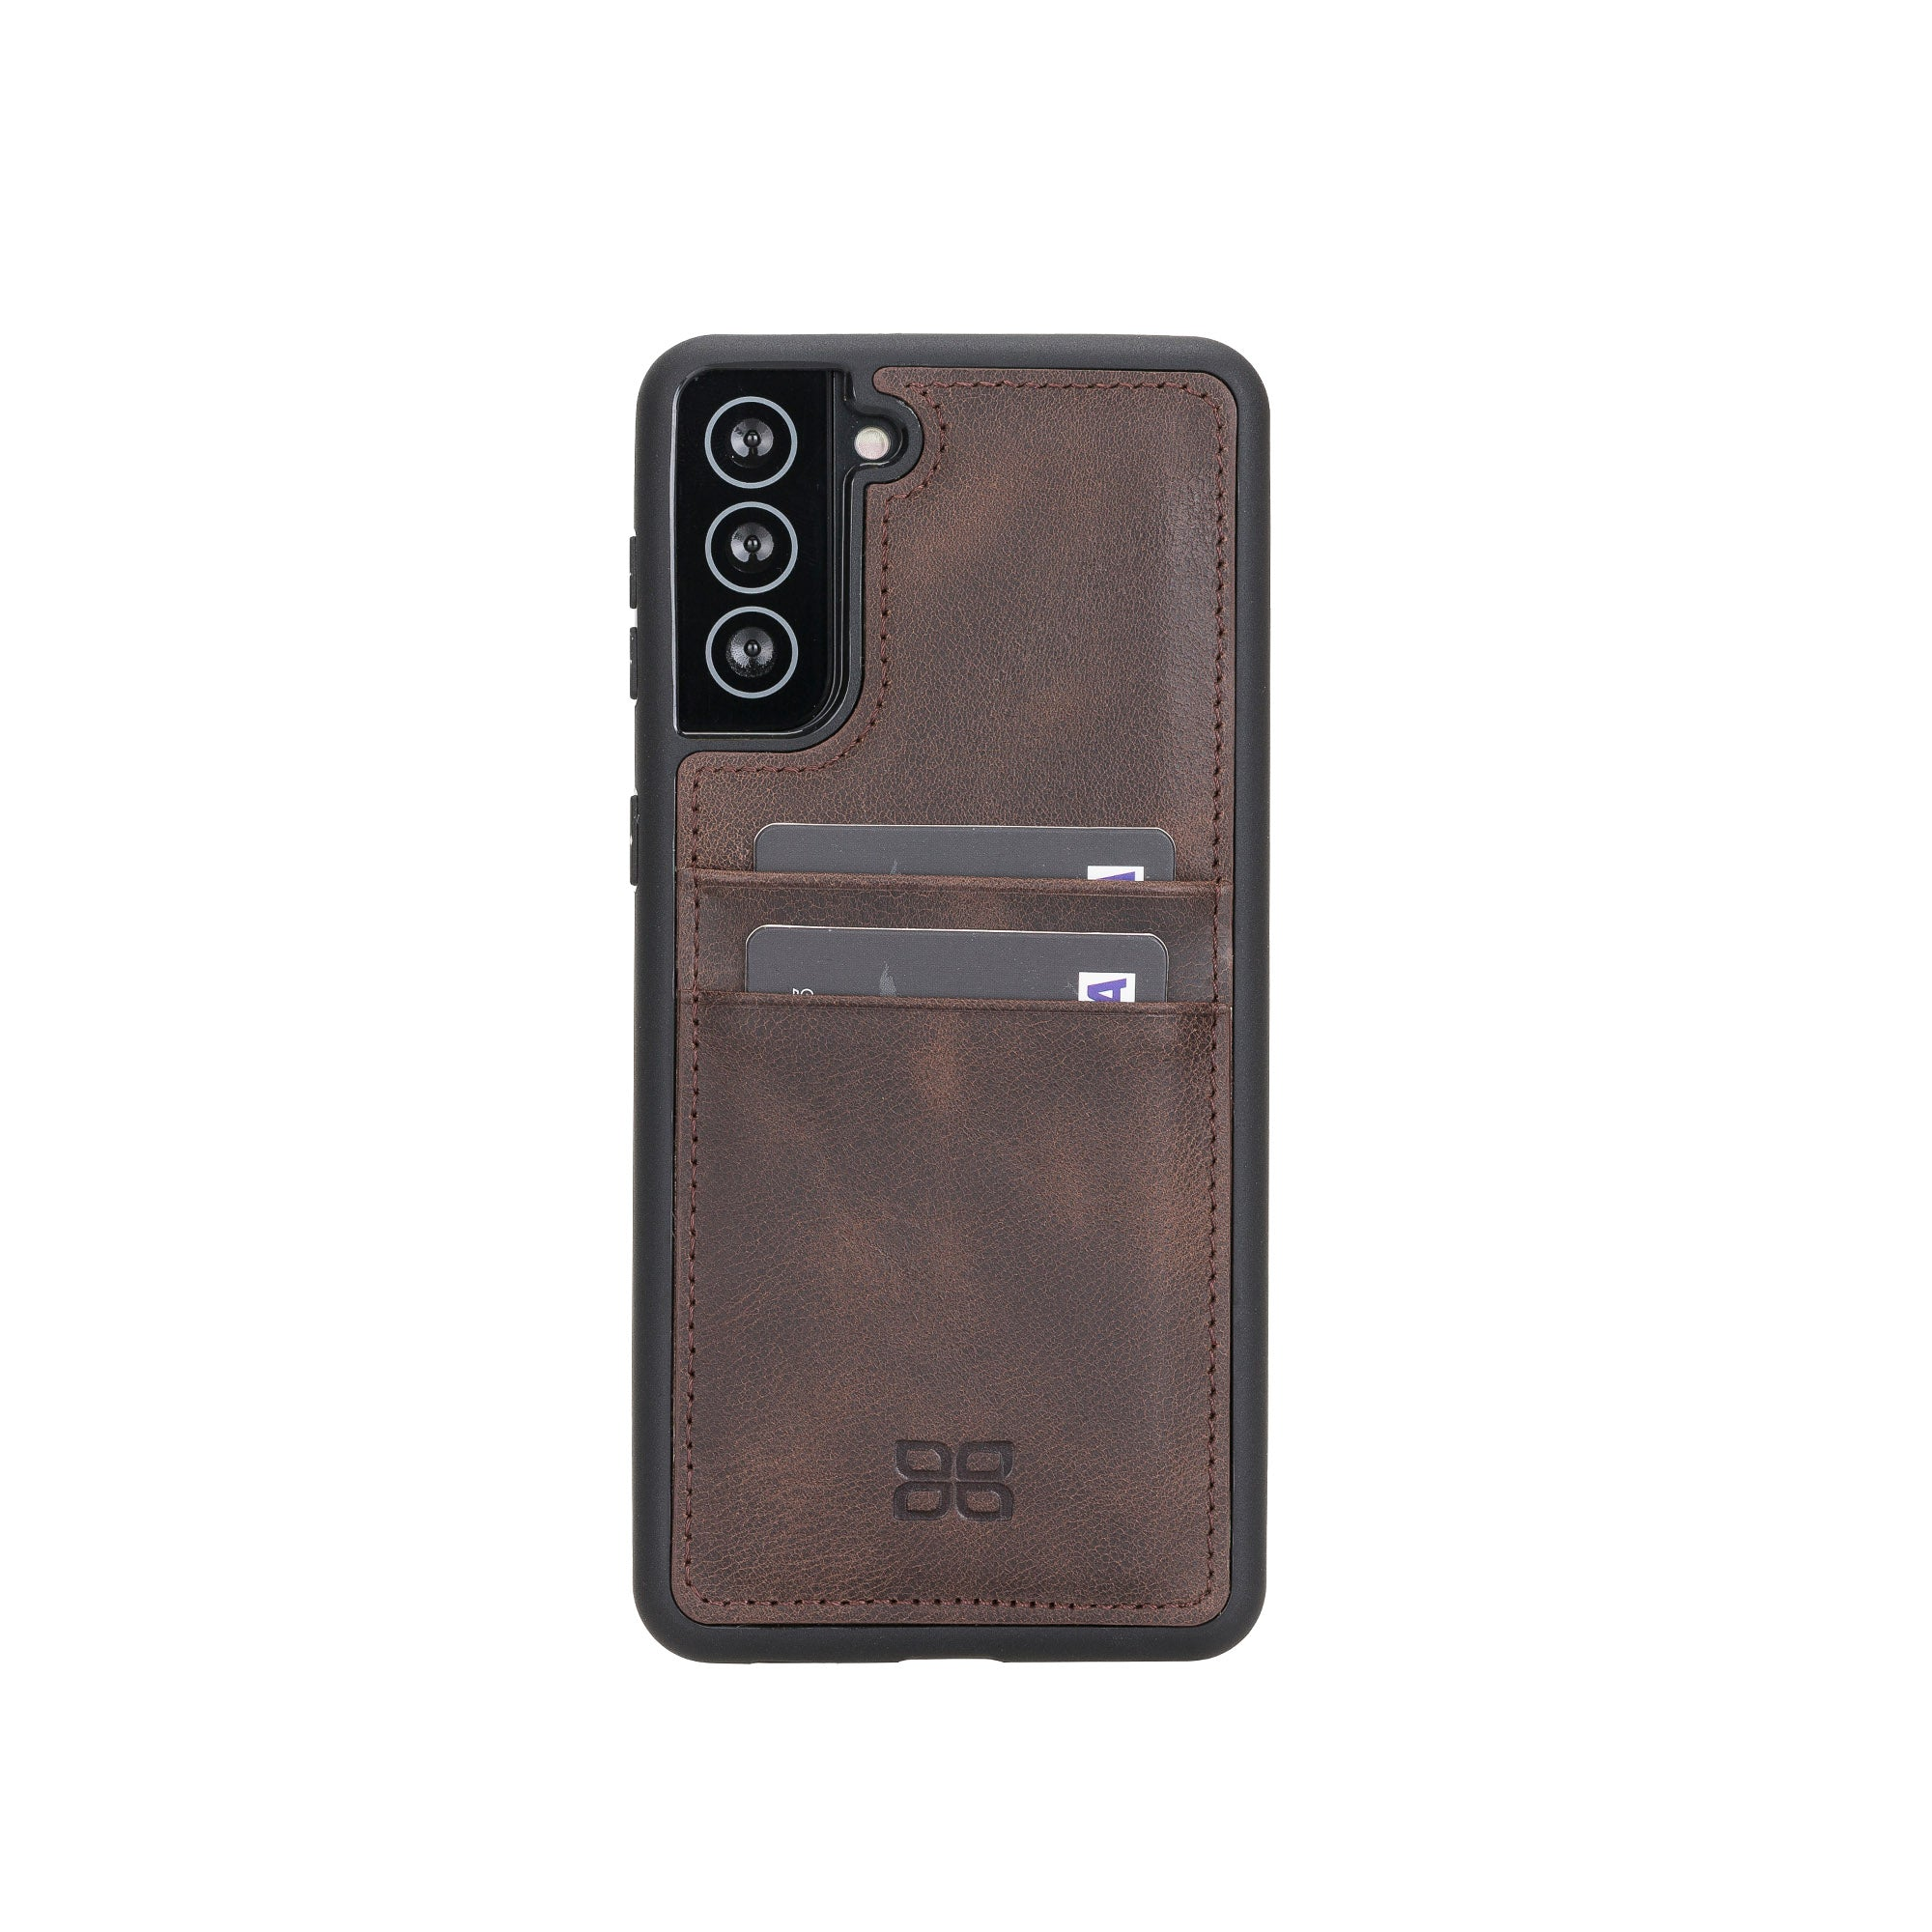 "Flex Cover Leather Back Case with Card Holder for Samsung Galaxy S21 5G (6.2"") - BROWN - saracleather"